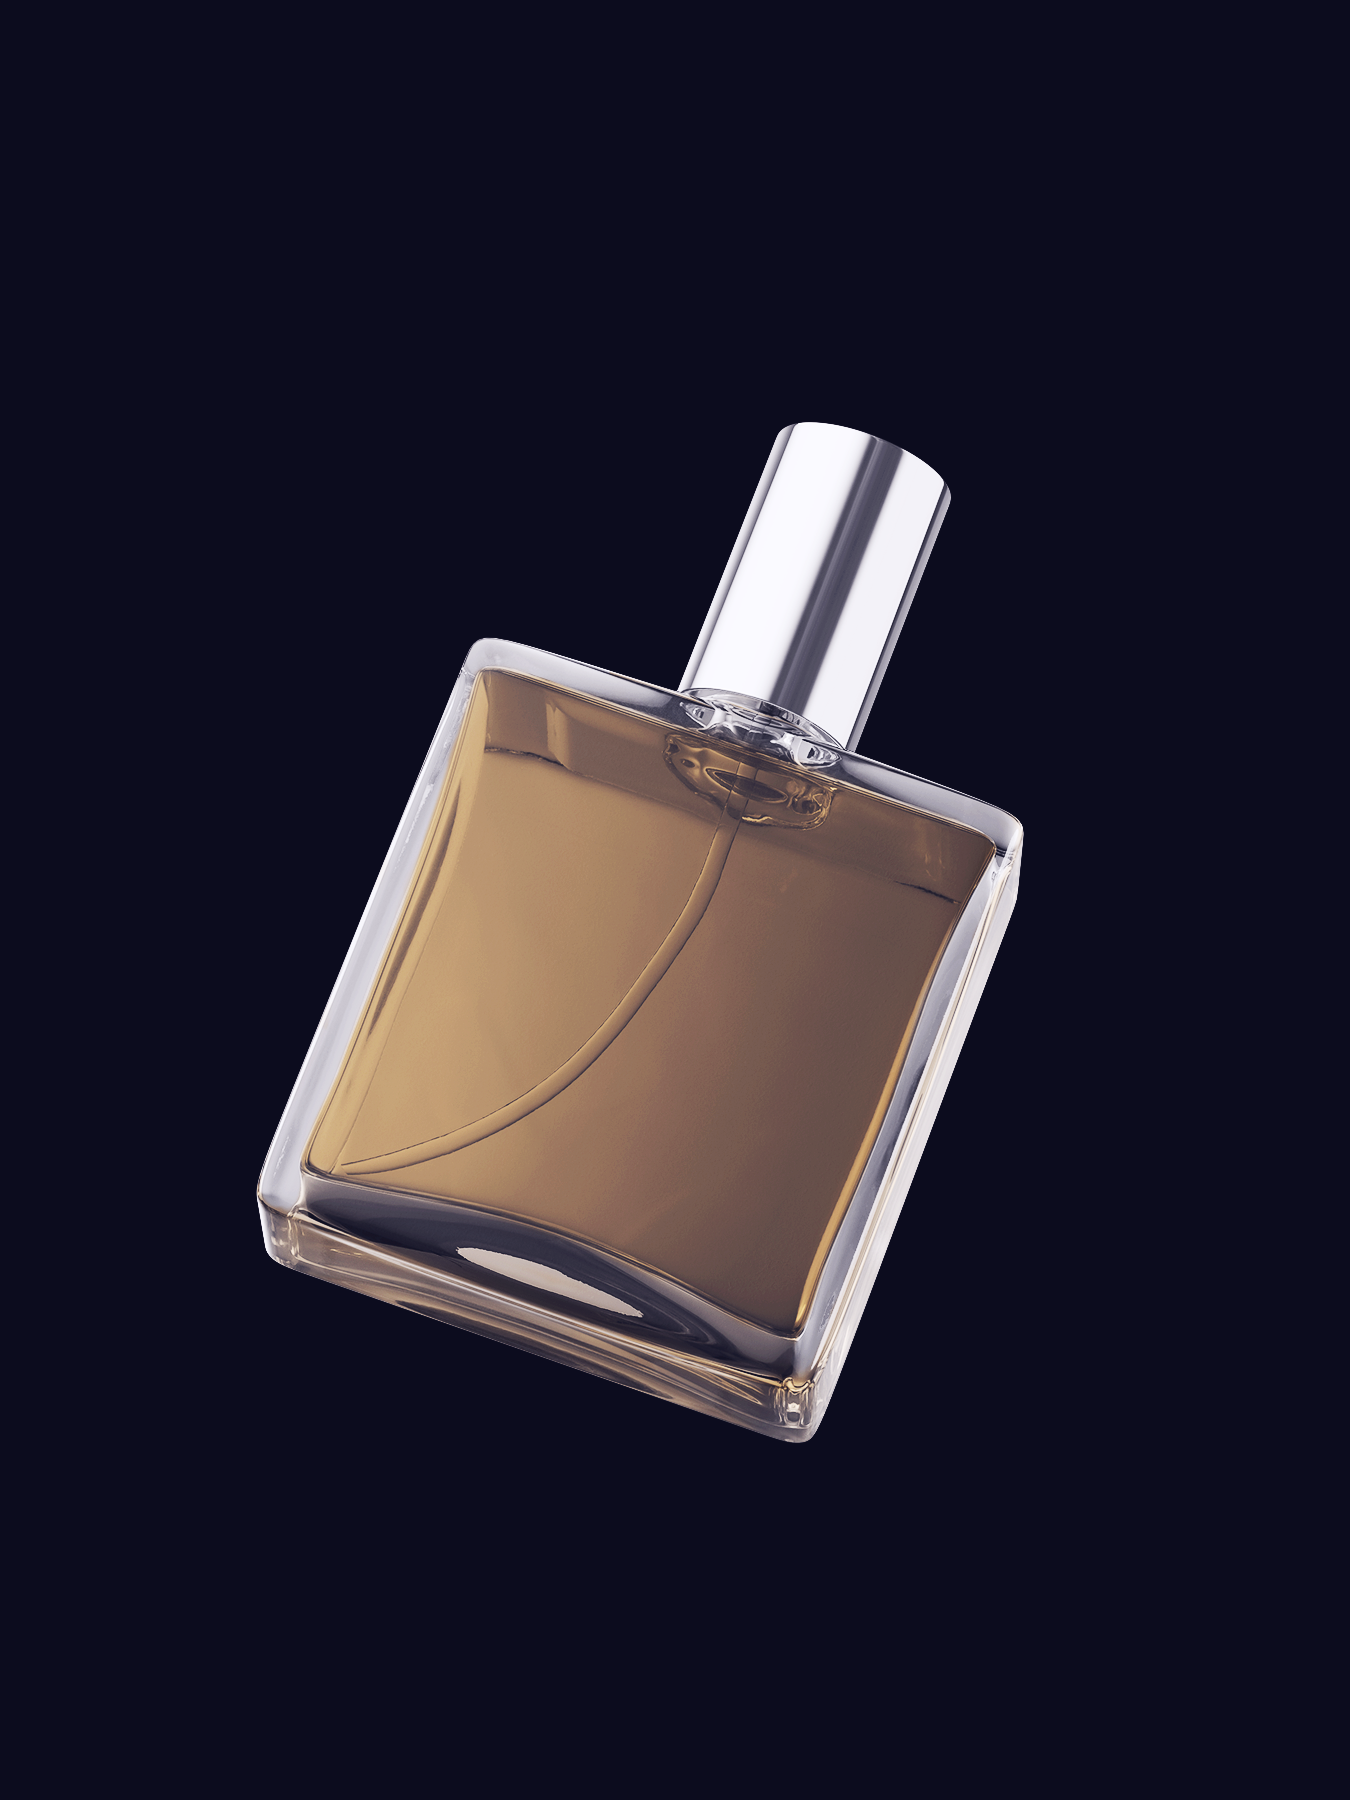 Free Perfume Flacon Bottle Mockup